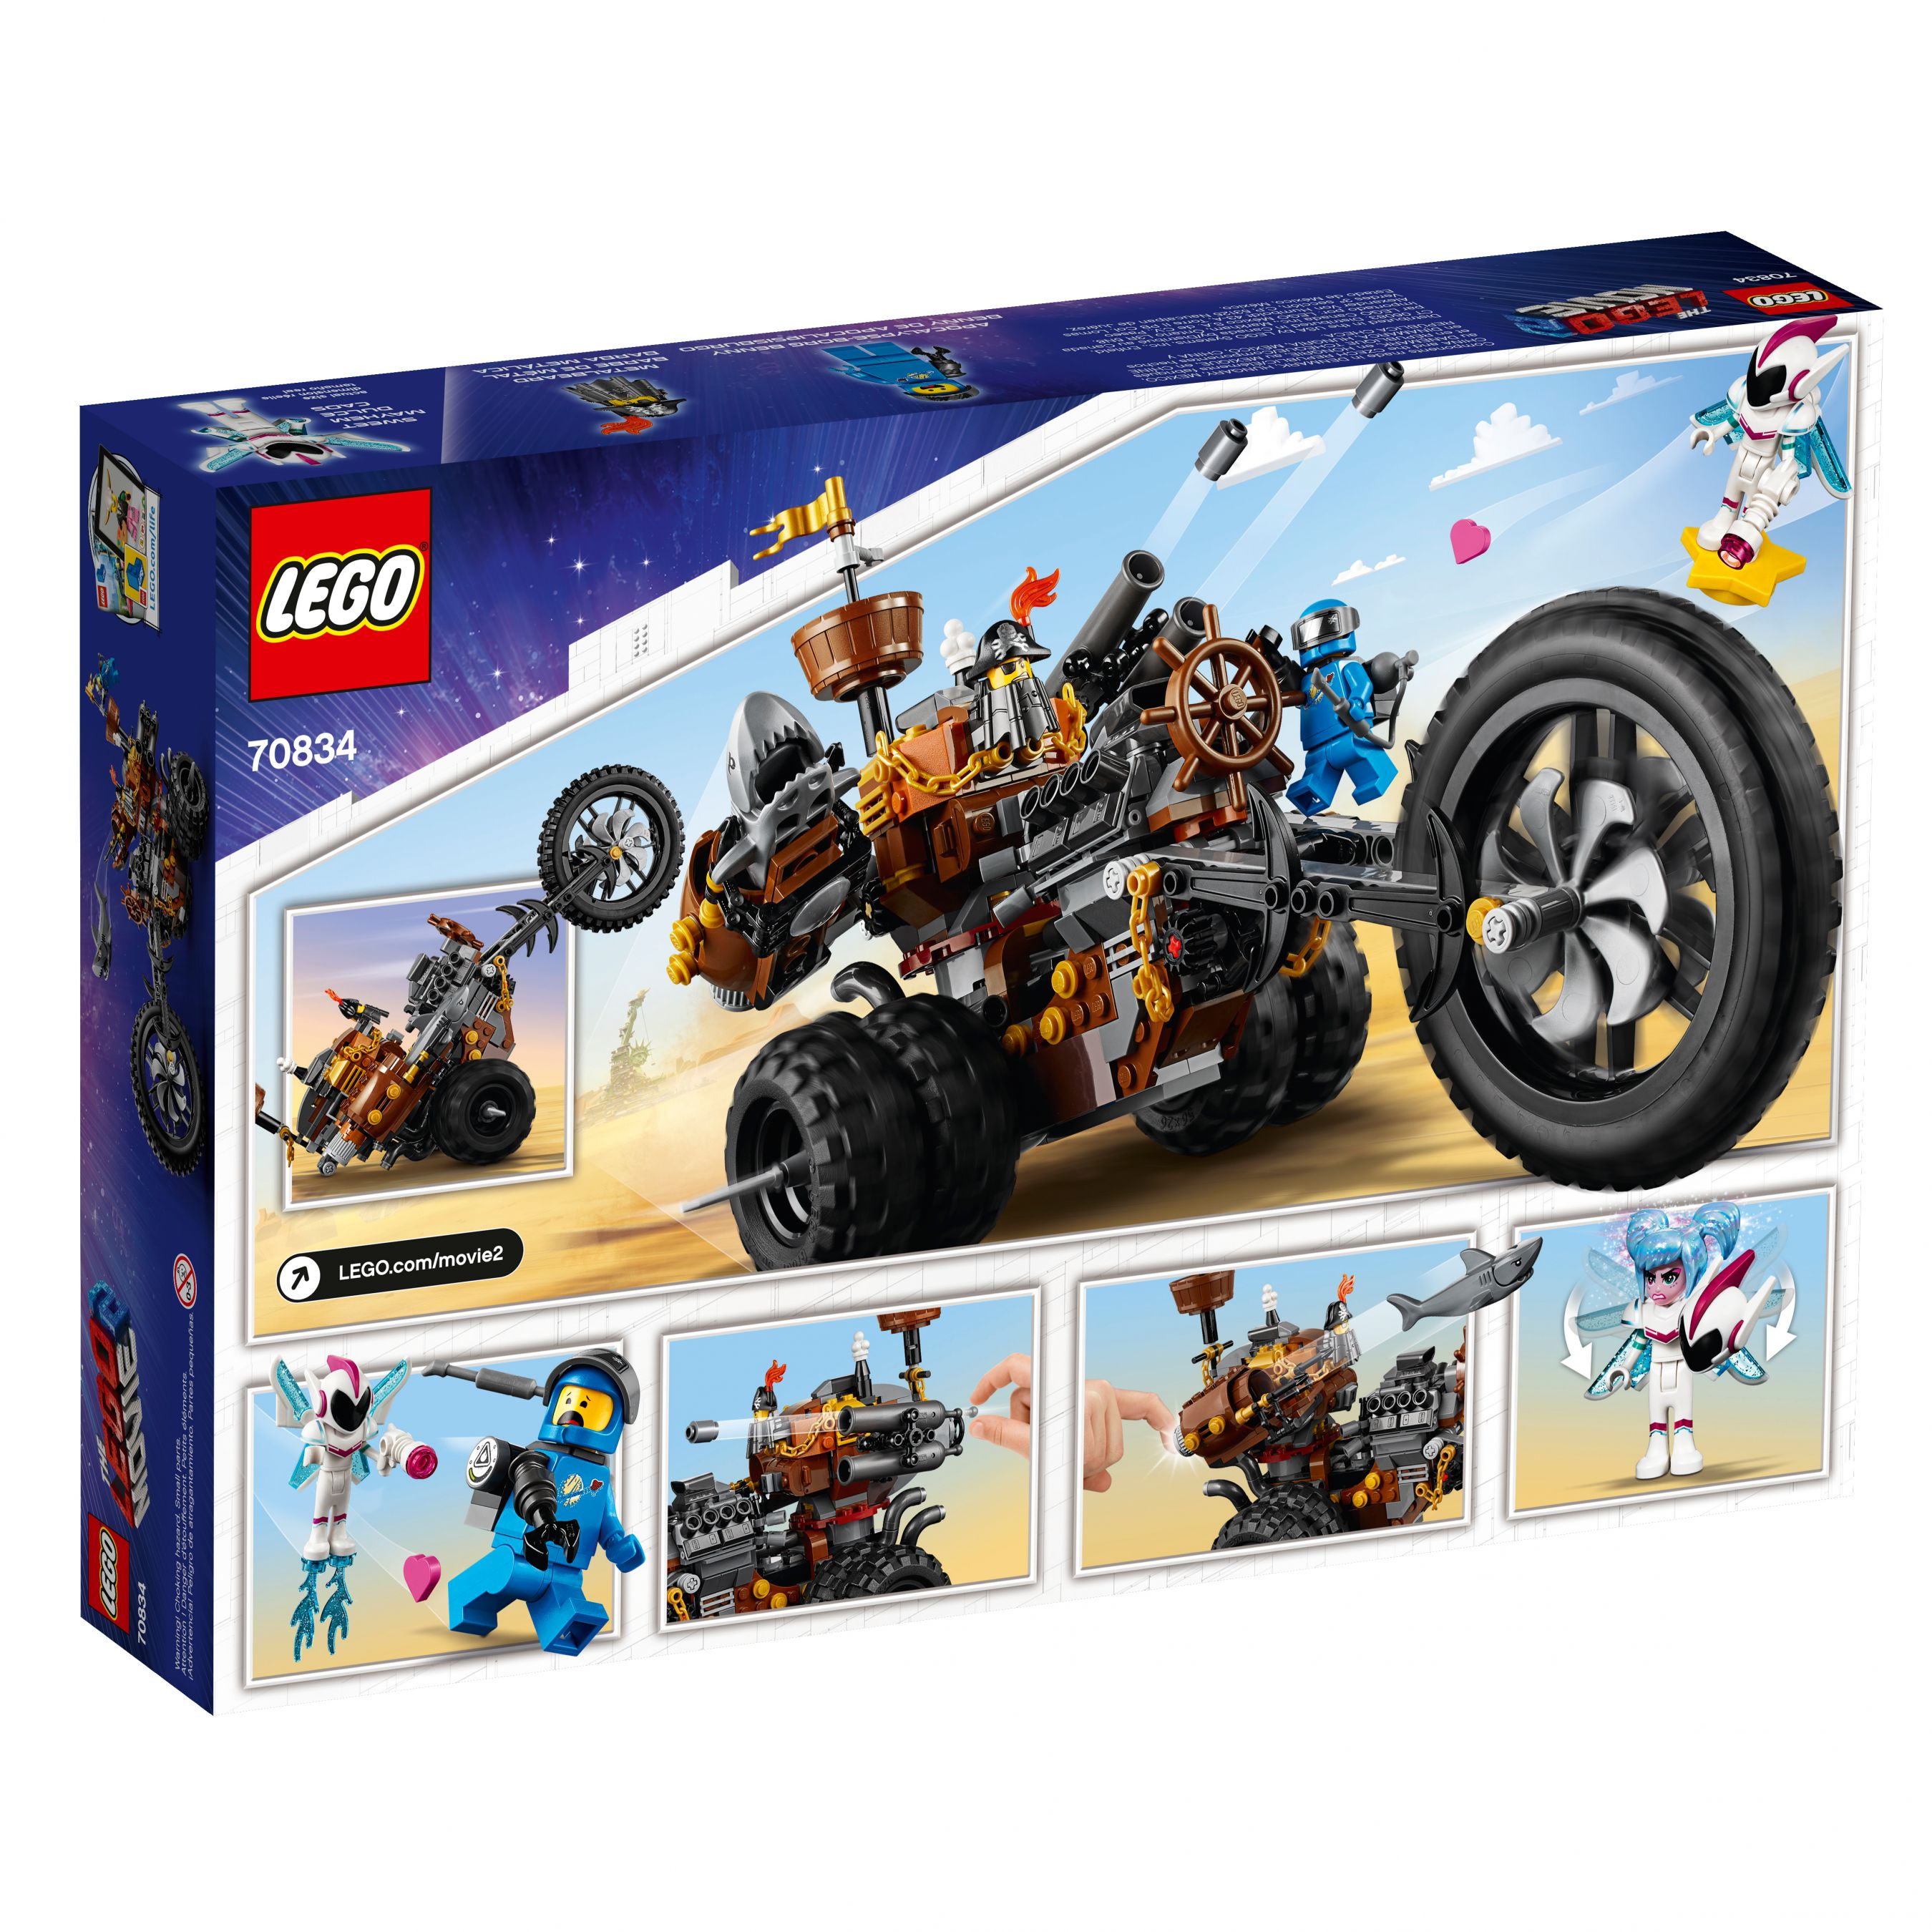 LEGO The LEGO Movie 2 70834 Eisenbarts Heavy-Metal-Trike! LEGO_70834_alt2.jpg